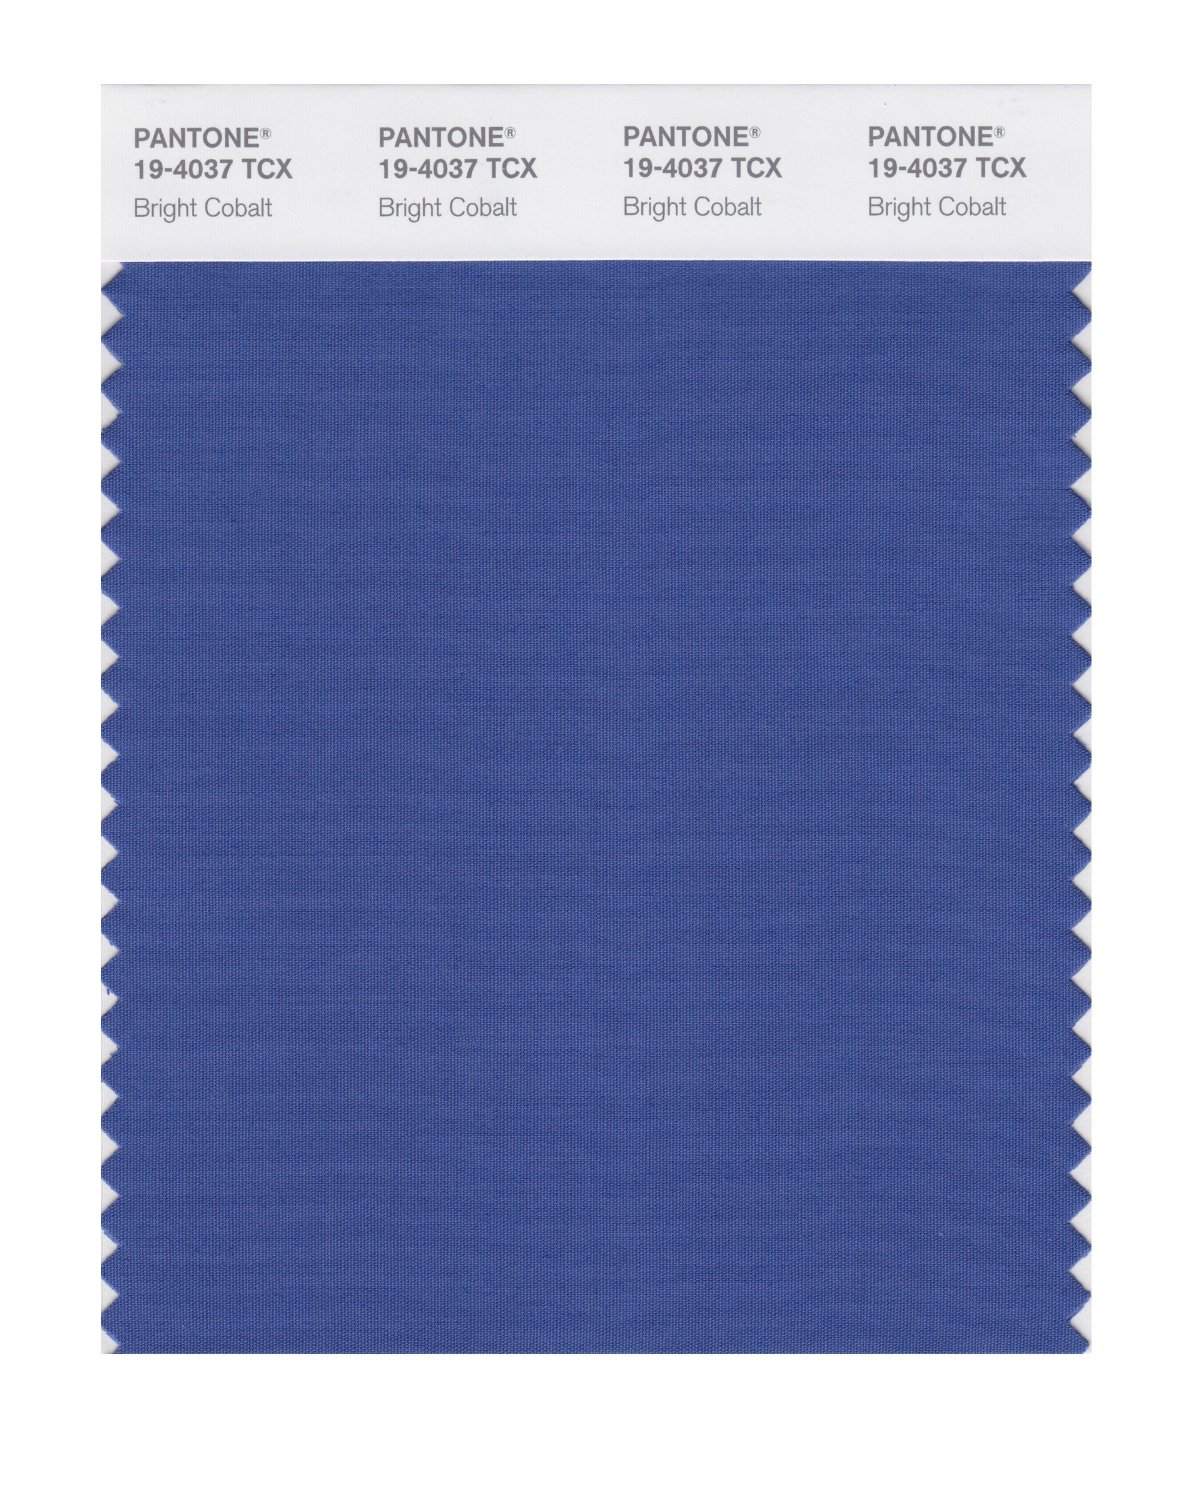 Pantone Smart Swatch 19-4037 Bright Cobalt